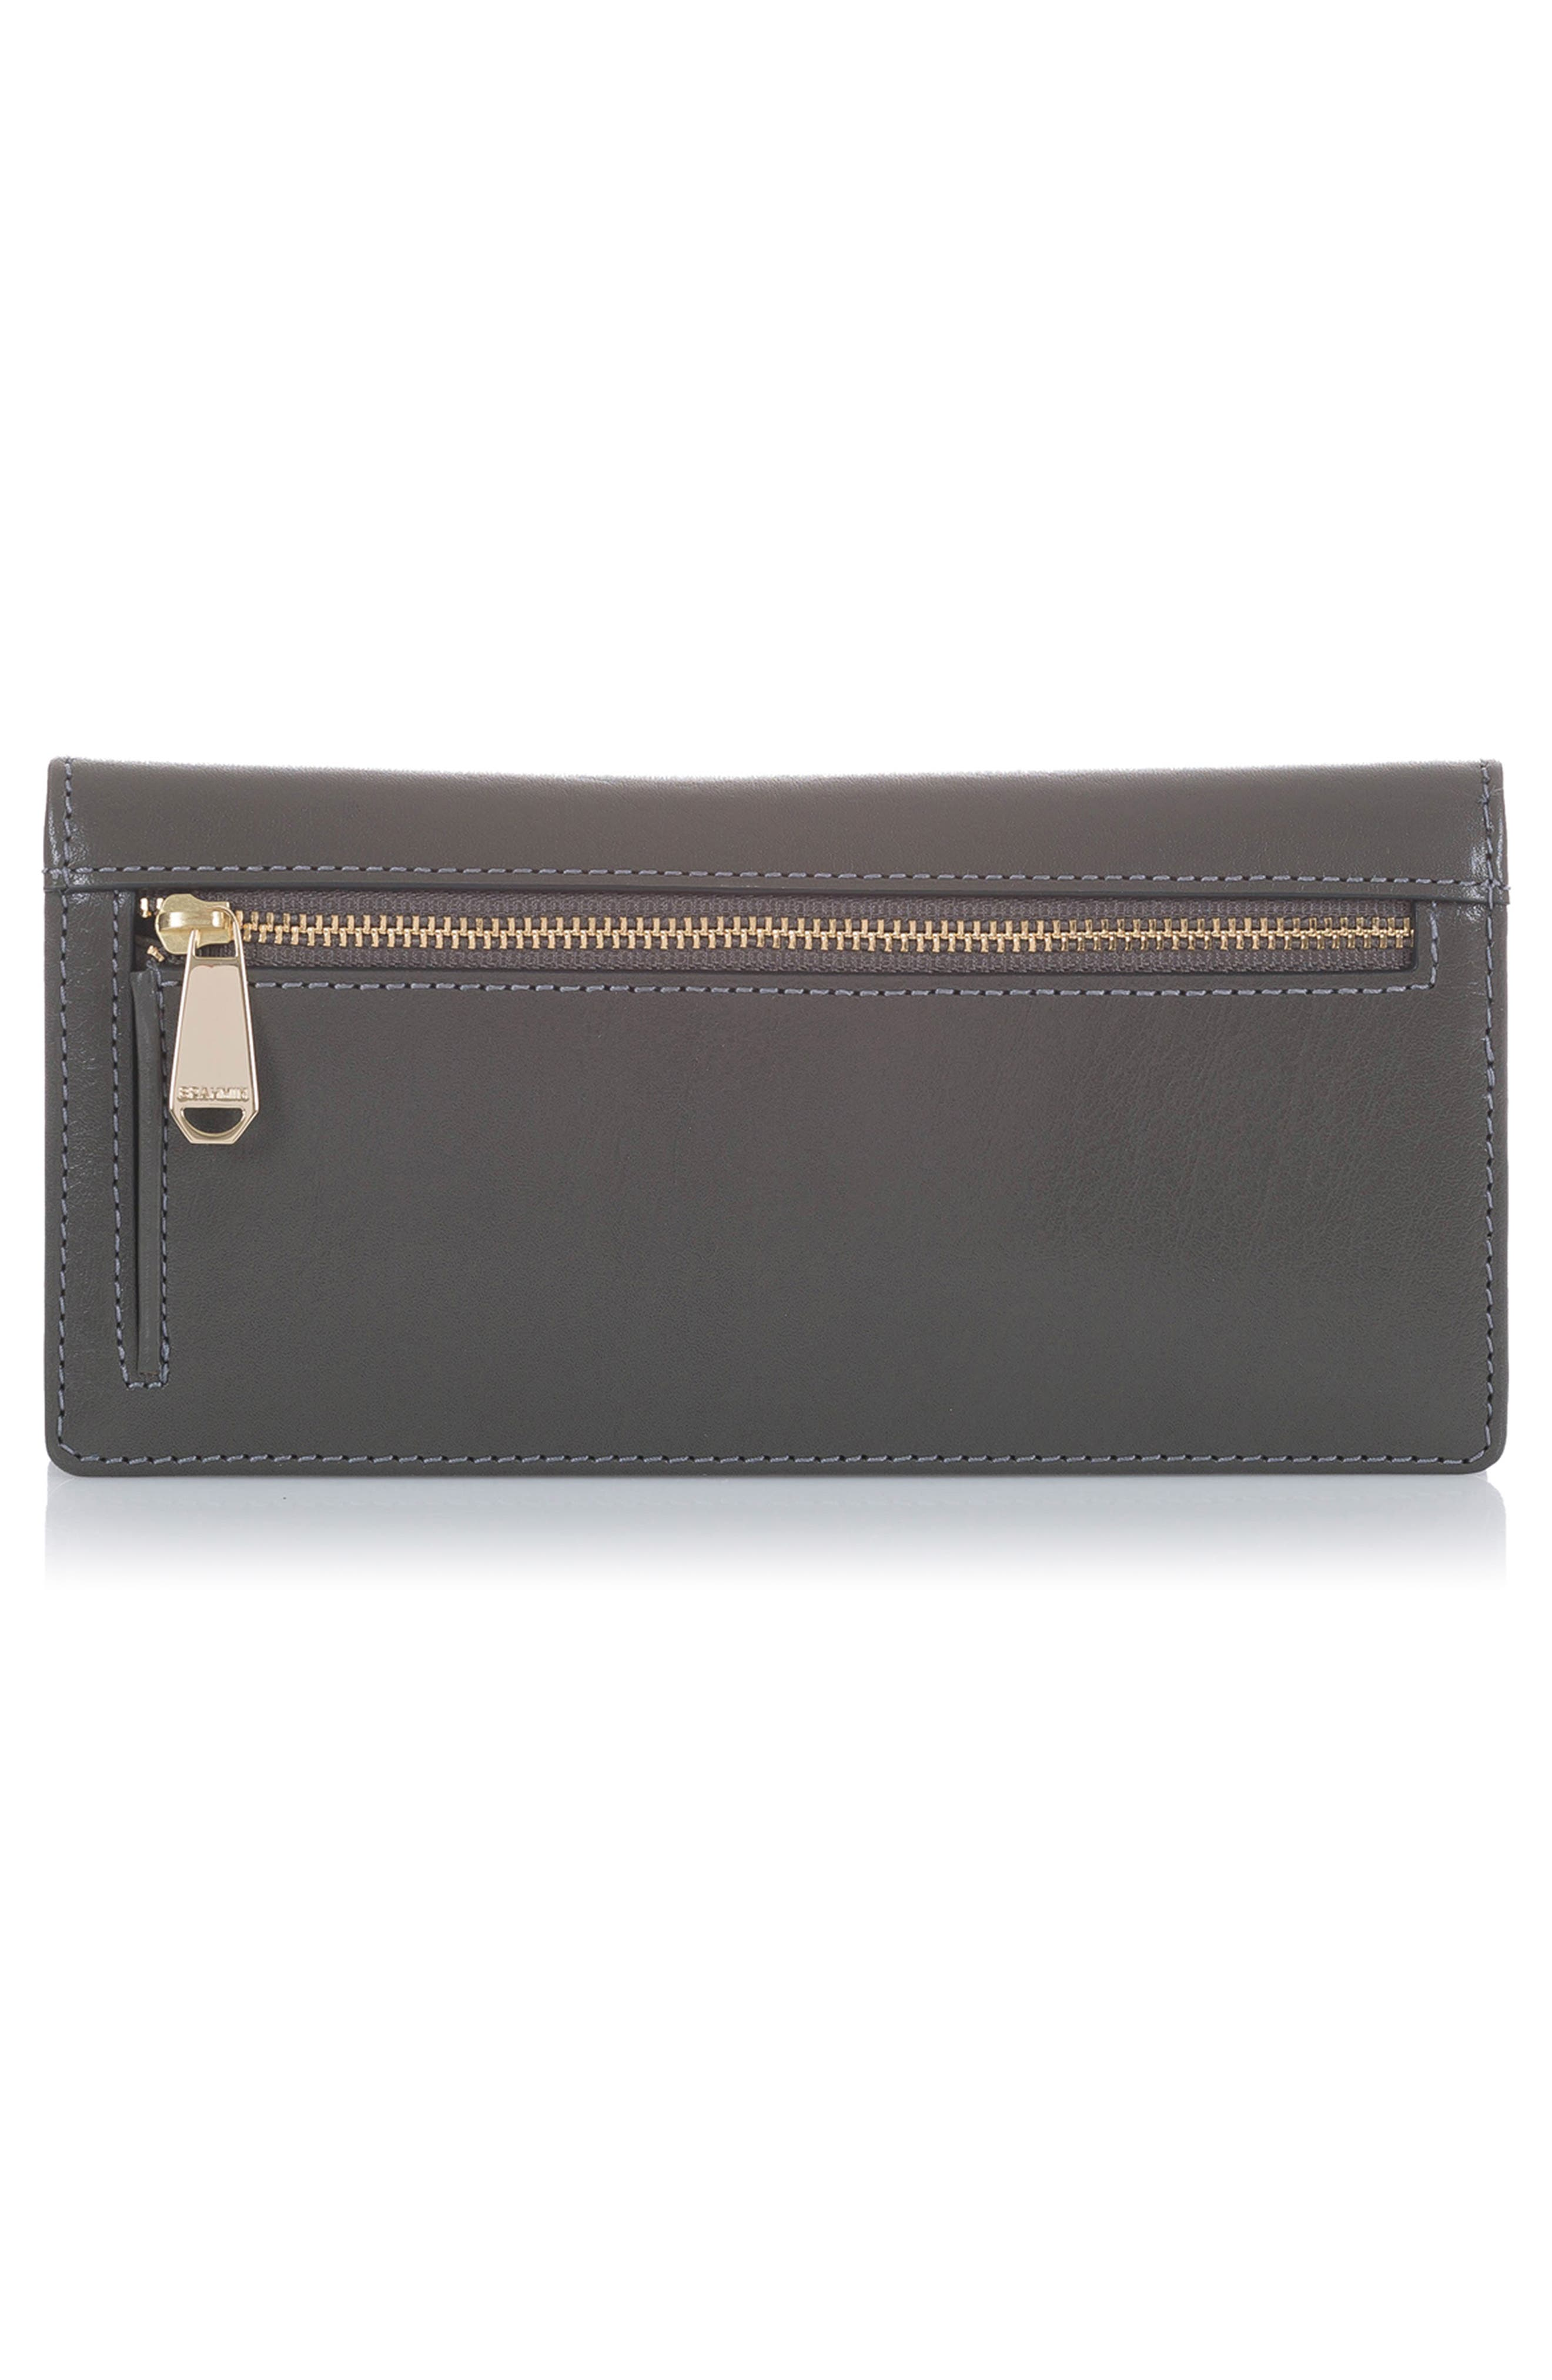 Ady Leather Wallet,                             Alternate thumbnail 3, color,                             CHARCOAL